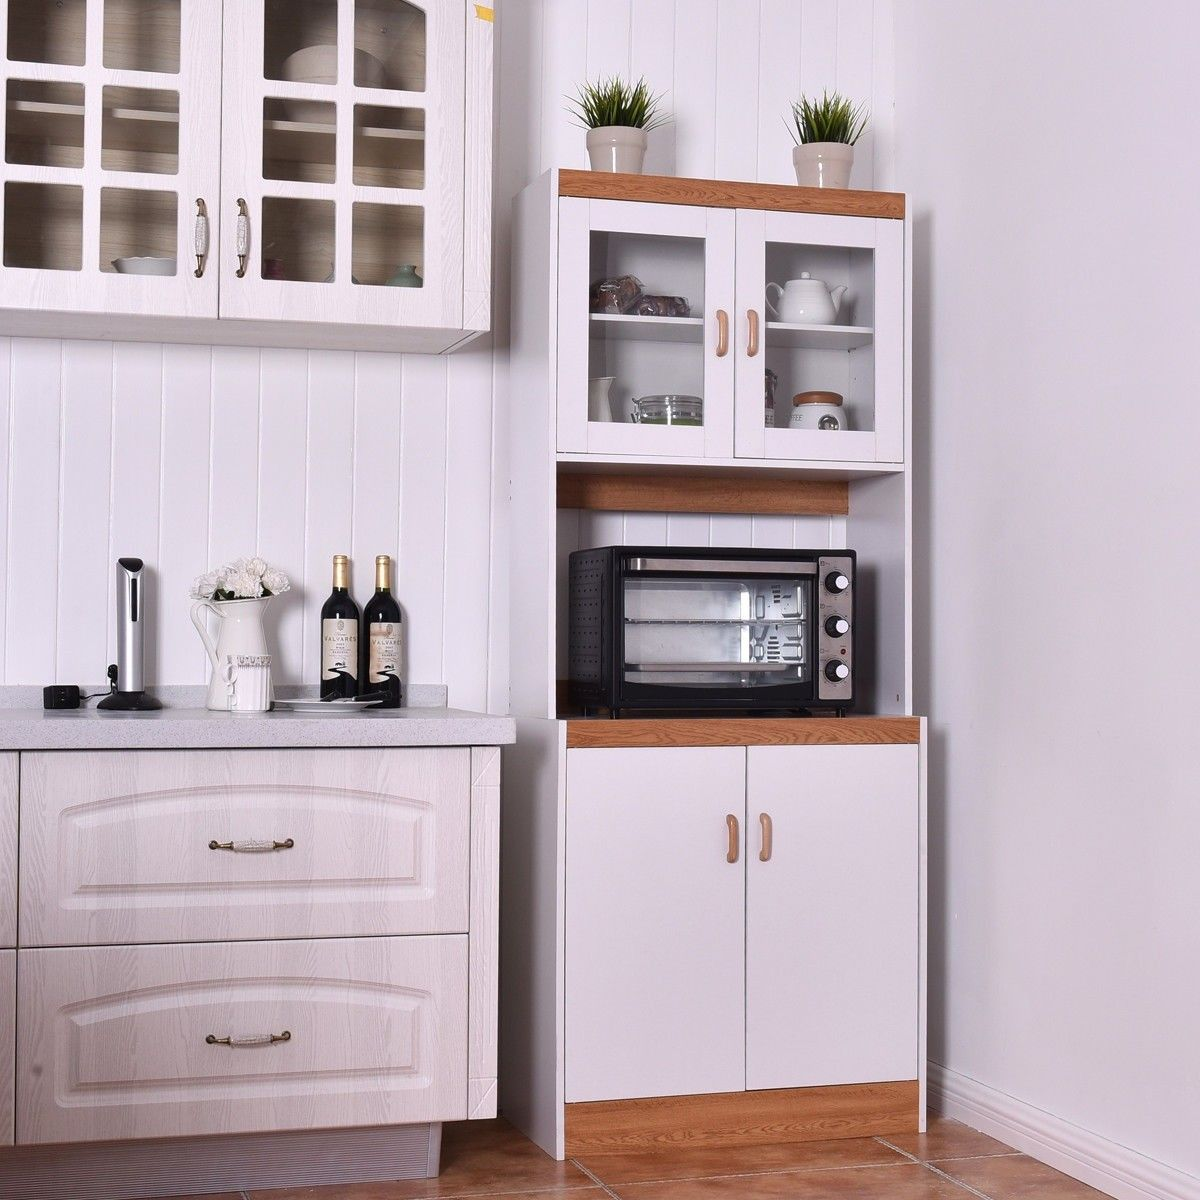 Tall Shelves Microwave Cart Stand Kitchen Storage Cabinet 129 95 Free Shipping This Is Kitchen Cabinet Storage Microwave In Kitchen Storage Cabinet Shelves